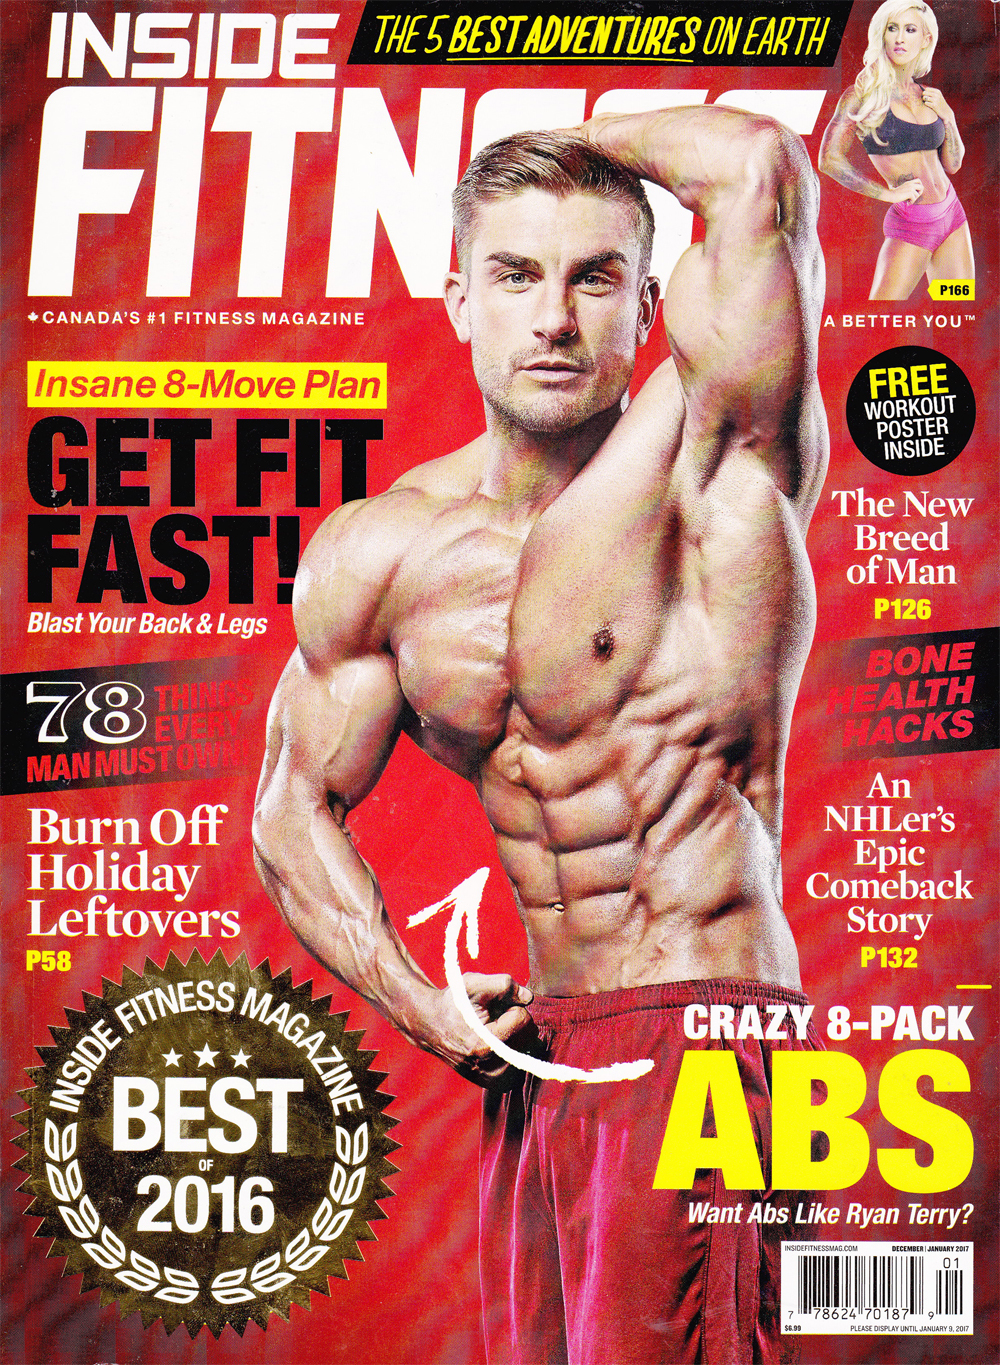 Inside Fitness Magazine December/January 2017 Cover